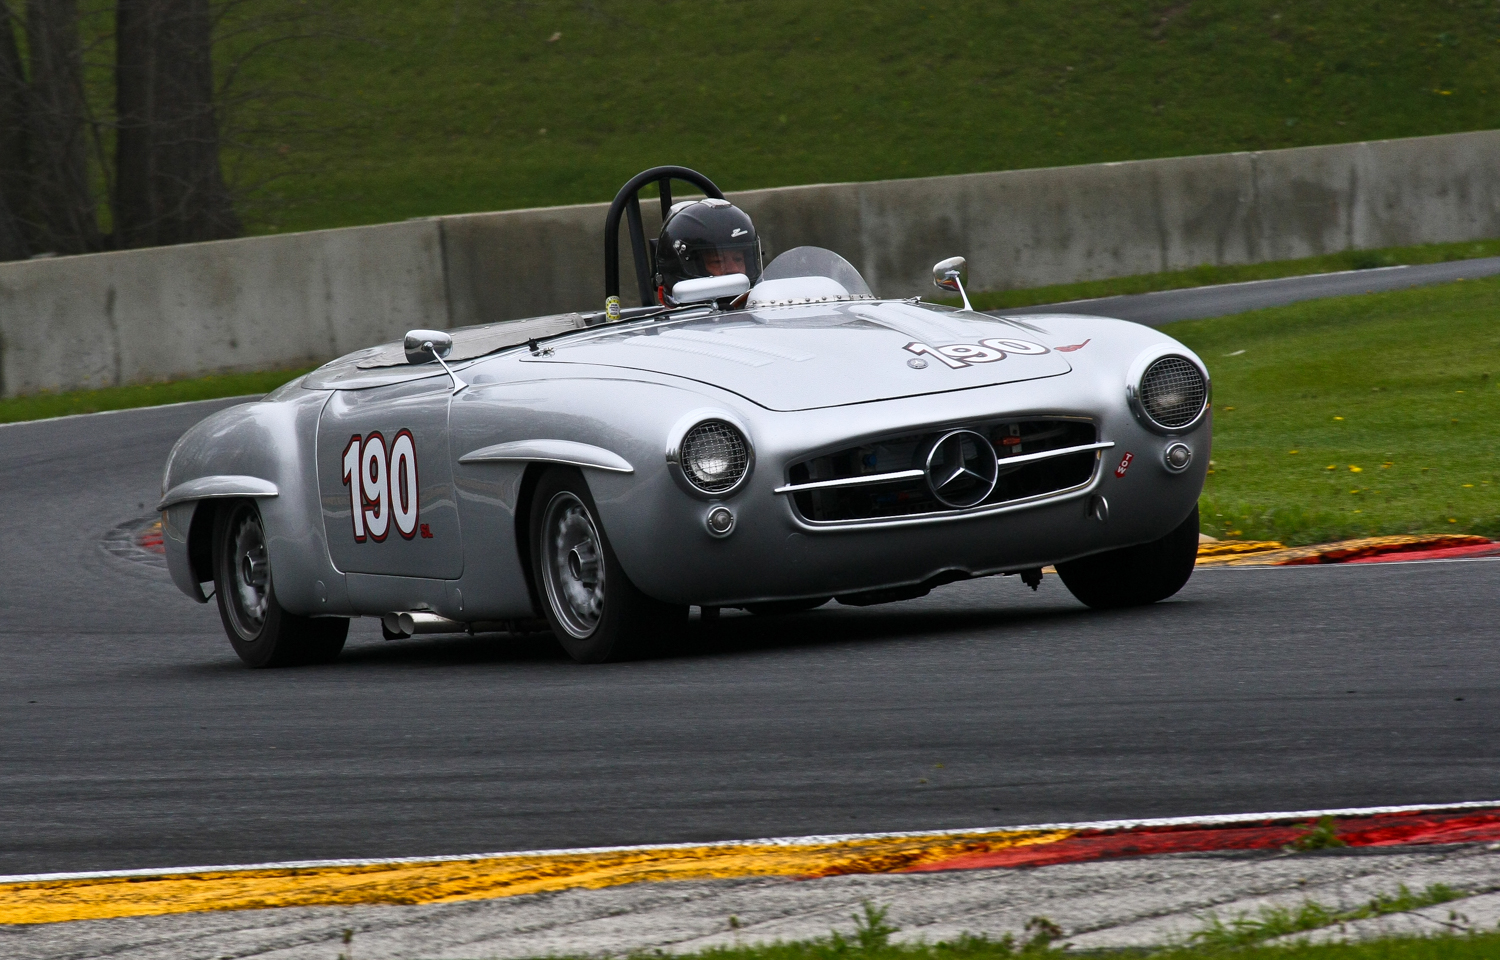 #190 - Doug Radix - 1955 Mercedes-Benz 190SL. Photo: Jeff Schabowski